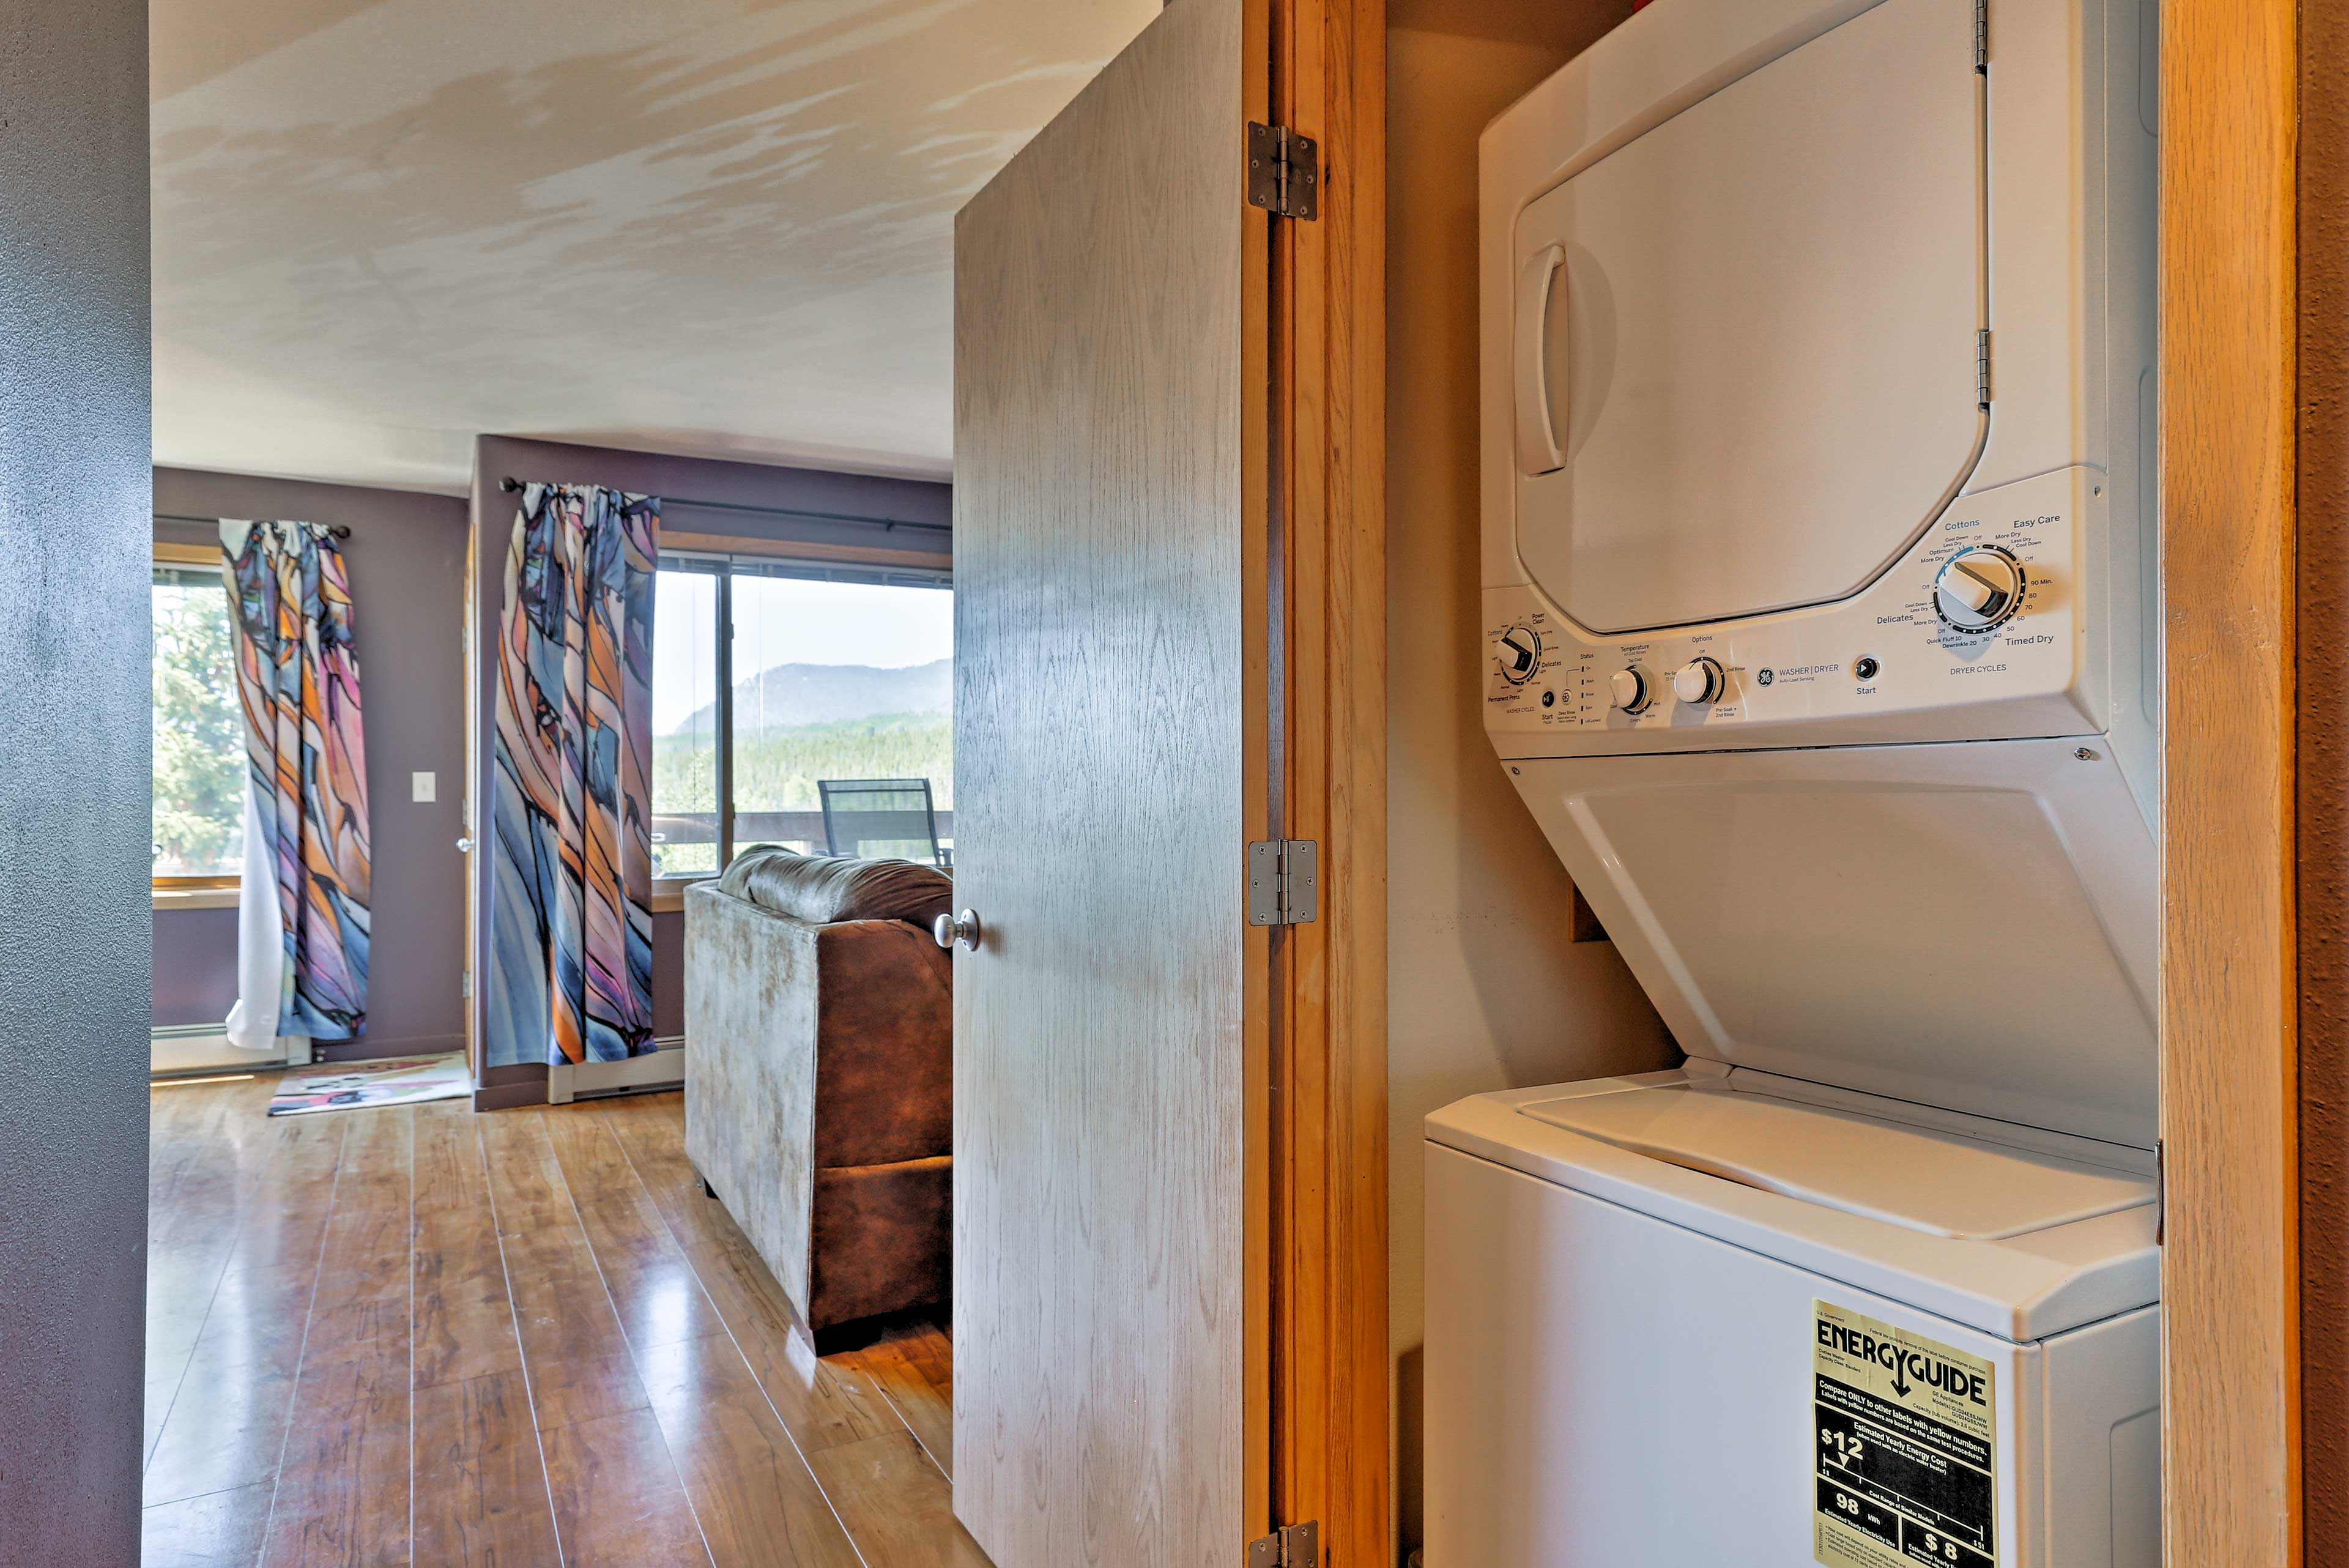 Keep your ski clothes fresh with a wash in the in-unit laundry machines.